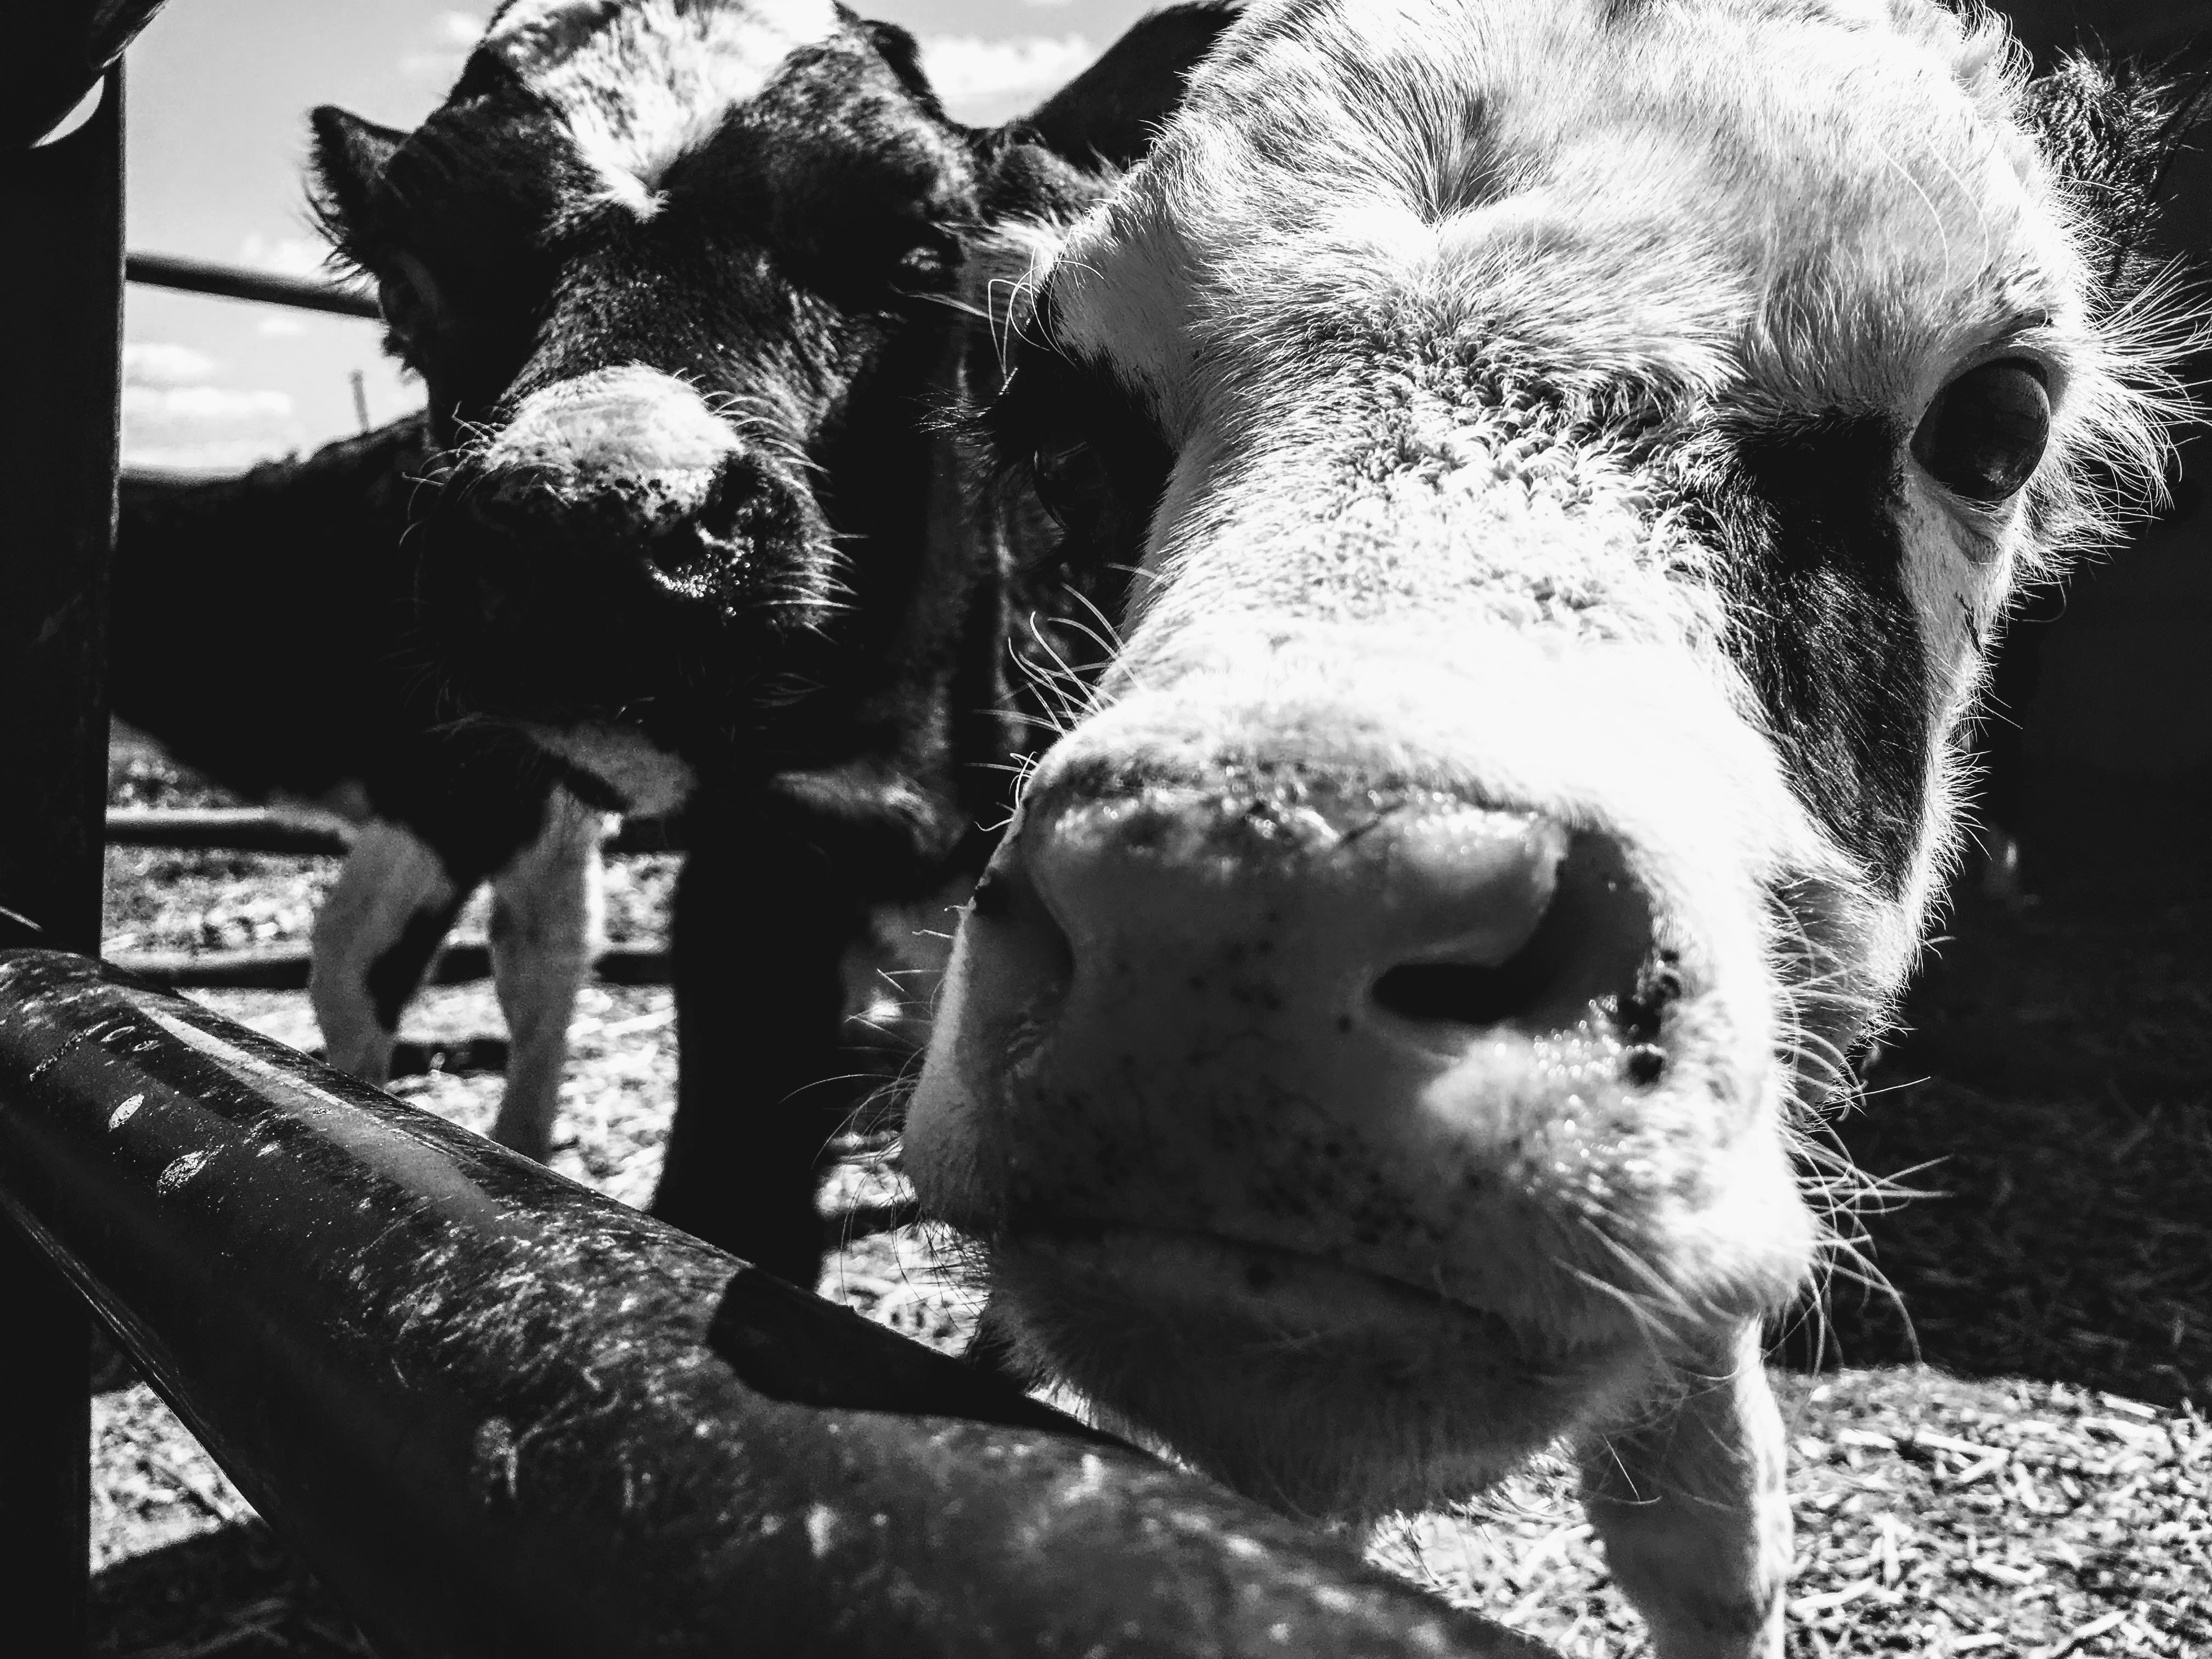 Best Iphone 6s Wallpapers Hd Grayscale Photography Of Cattle 183 Free Stock Photo